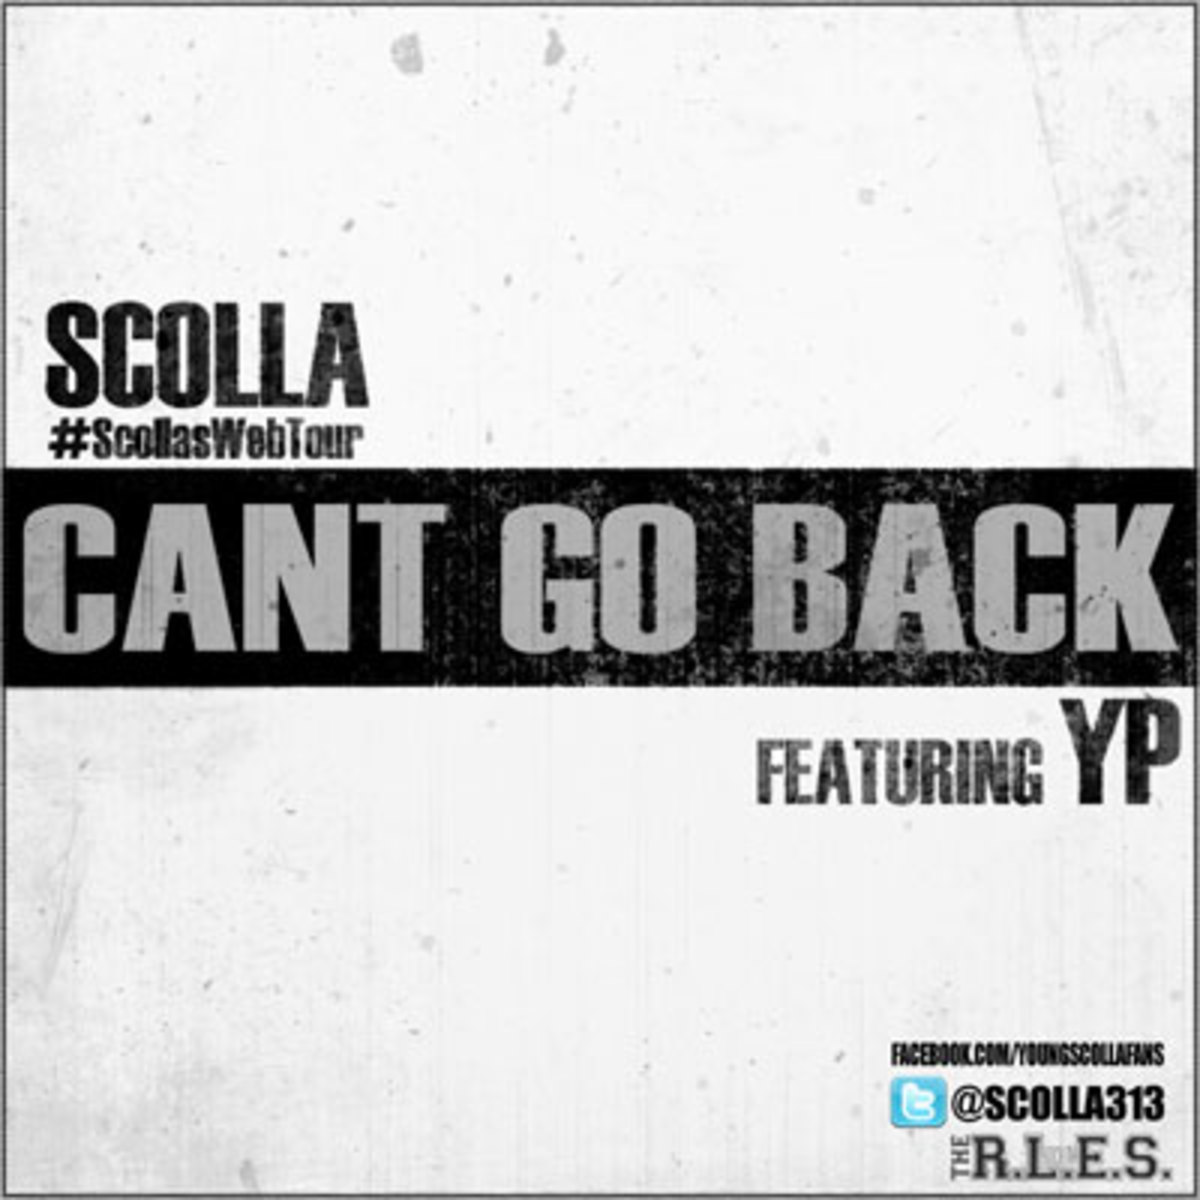 scolla-cantgoback.jpg